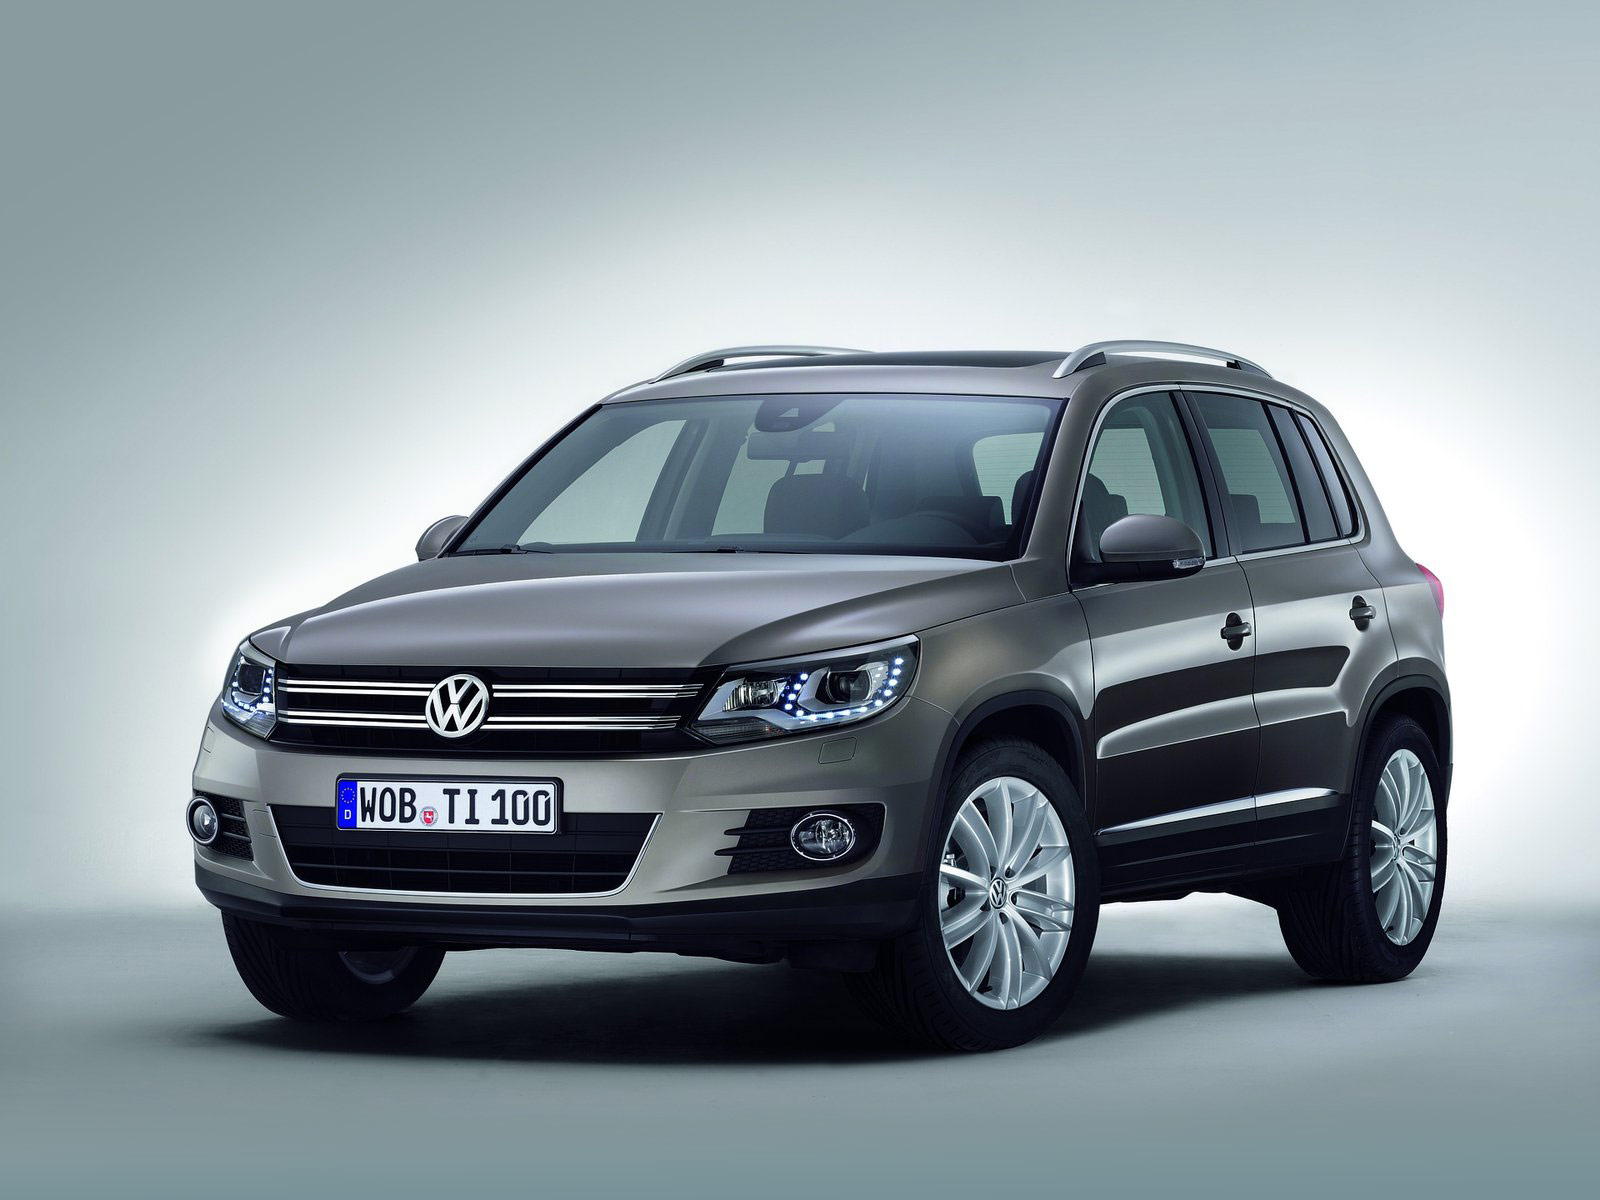 2012 volkswagen tiguan car desktop wallpapers auto trends magazine. Black Bedroom Furniture Sets. Home Design Ideas